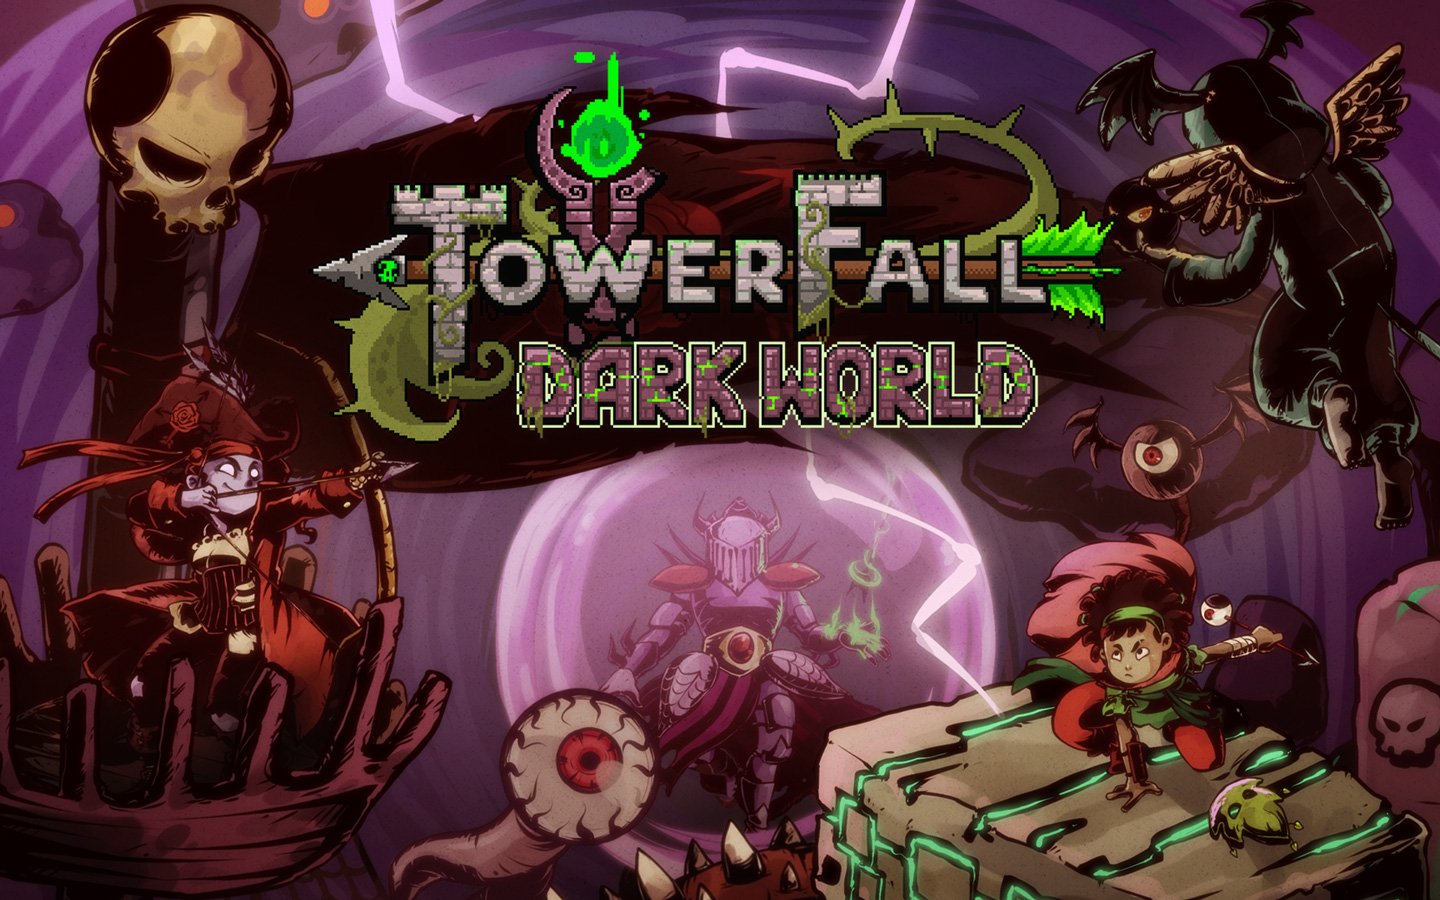 Free TowerFall Ascension Wallpaper in 1440x900